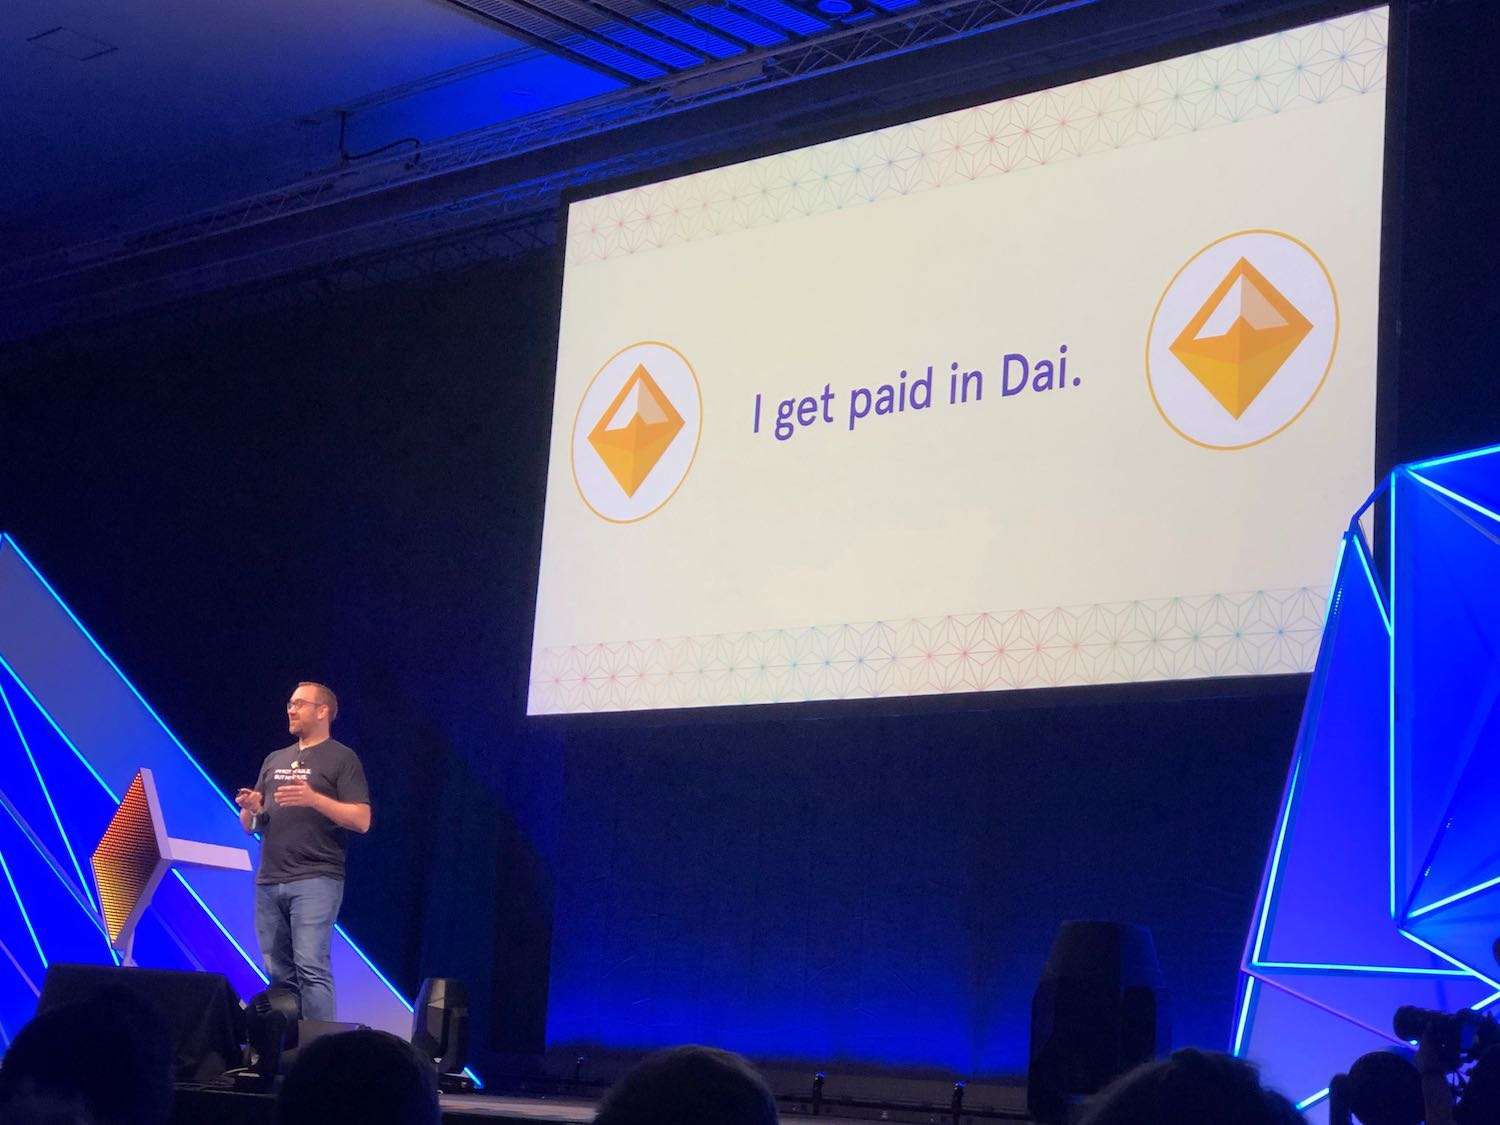 DAI Is Moving Beyond Ether, But DeFi Isn't Decentralized Just Yet - CoinDesk